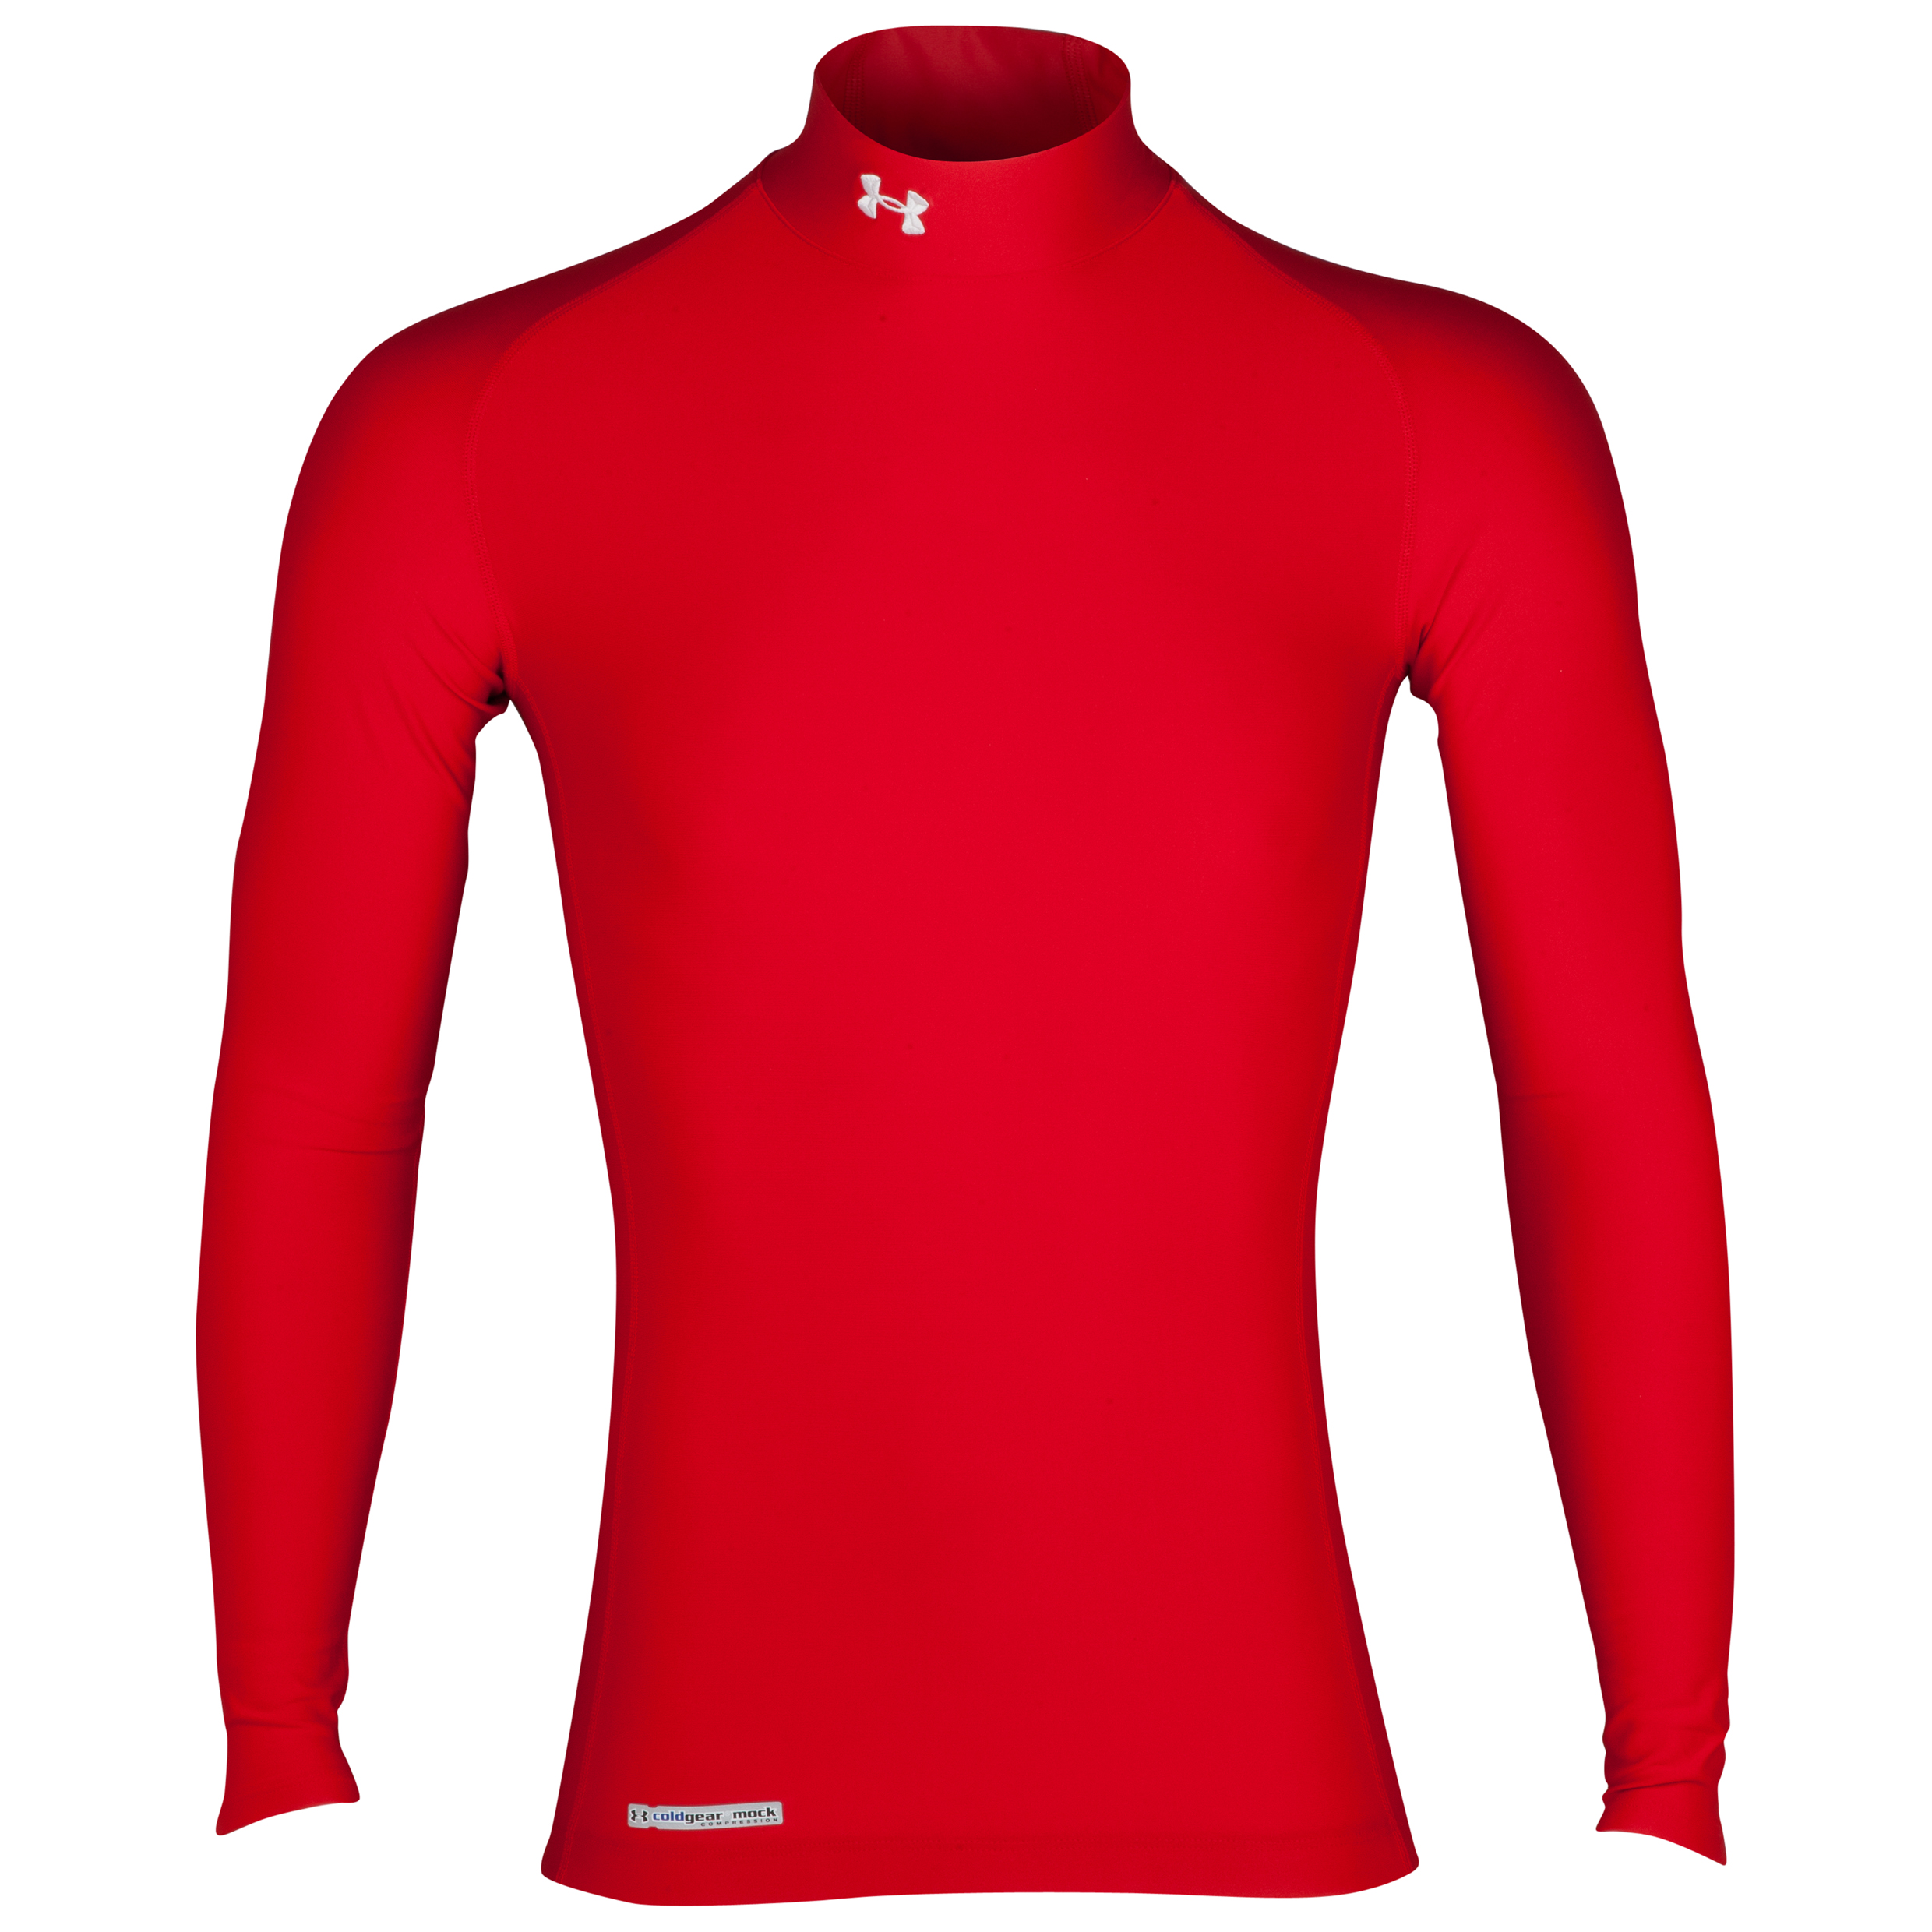 Under Armour Evo Coldgear mock Base Layer Top - Long Sleeve Red